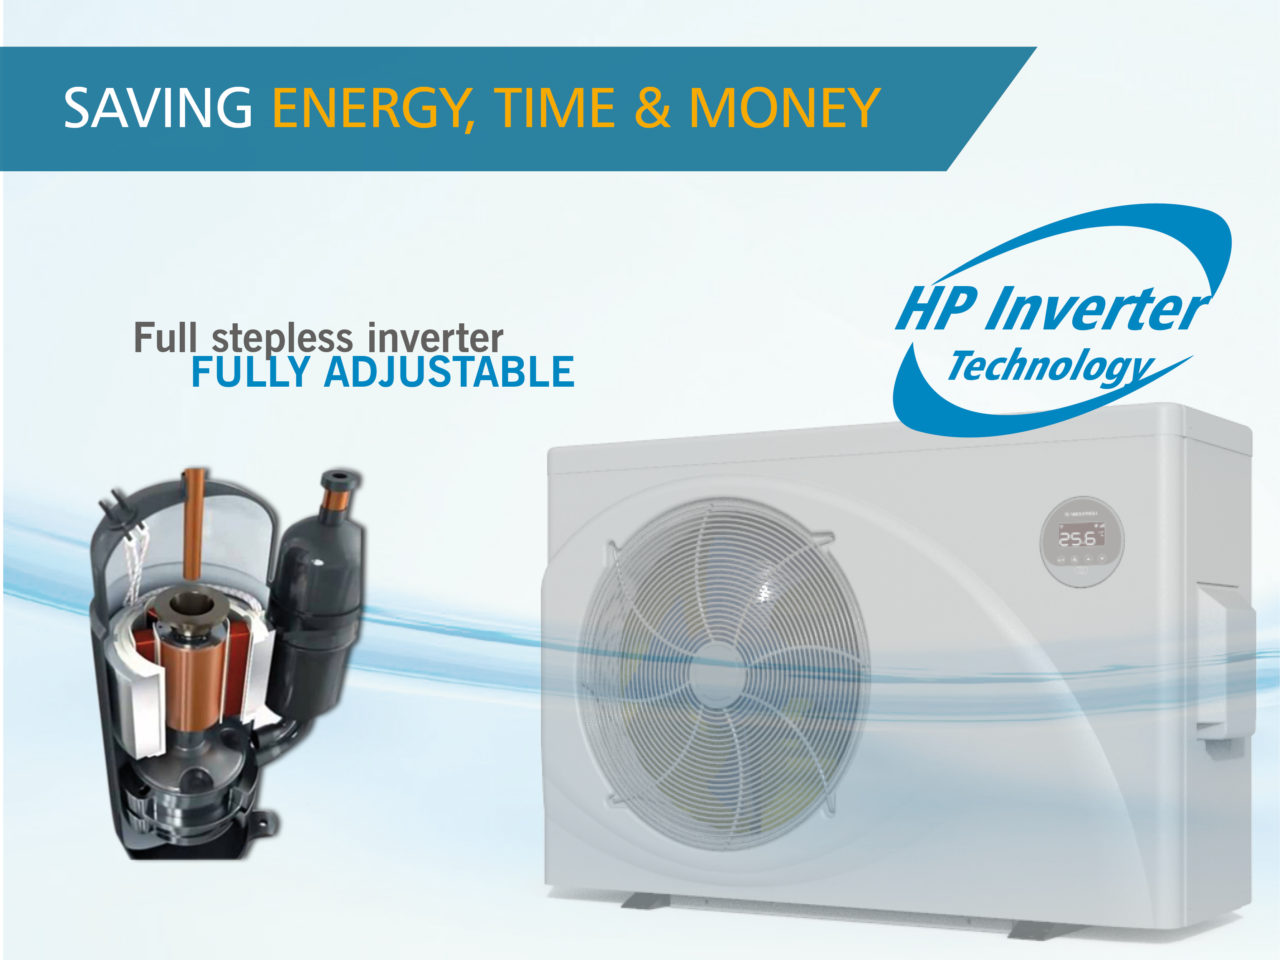 Why Microwell Inverter? | Blog - Microwell